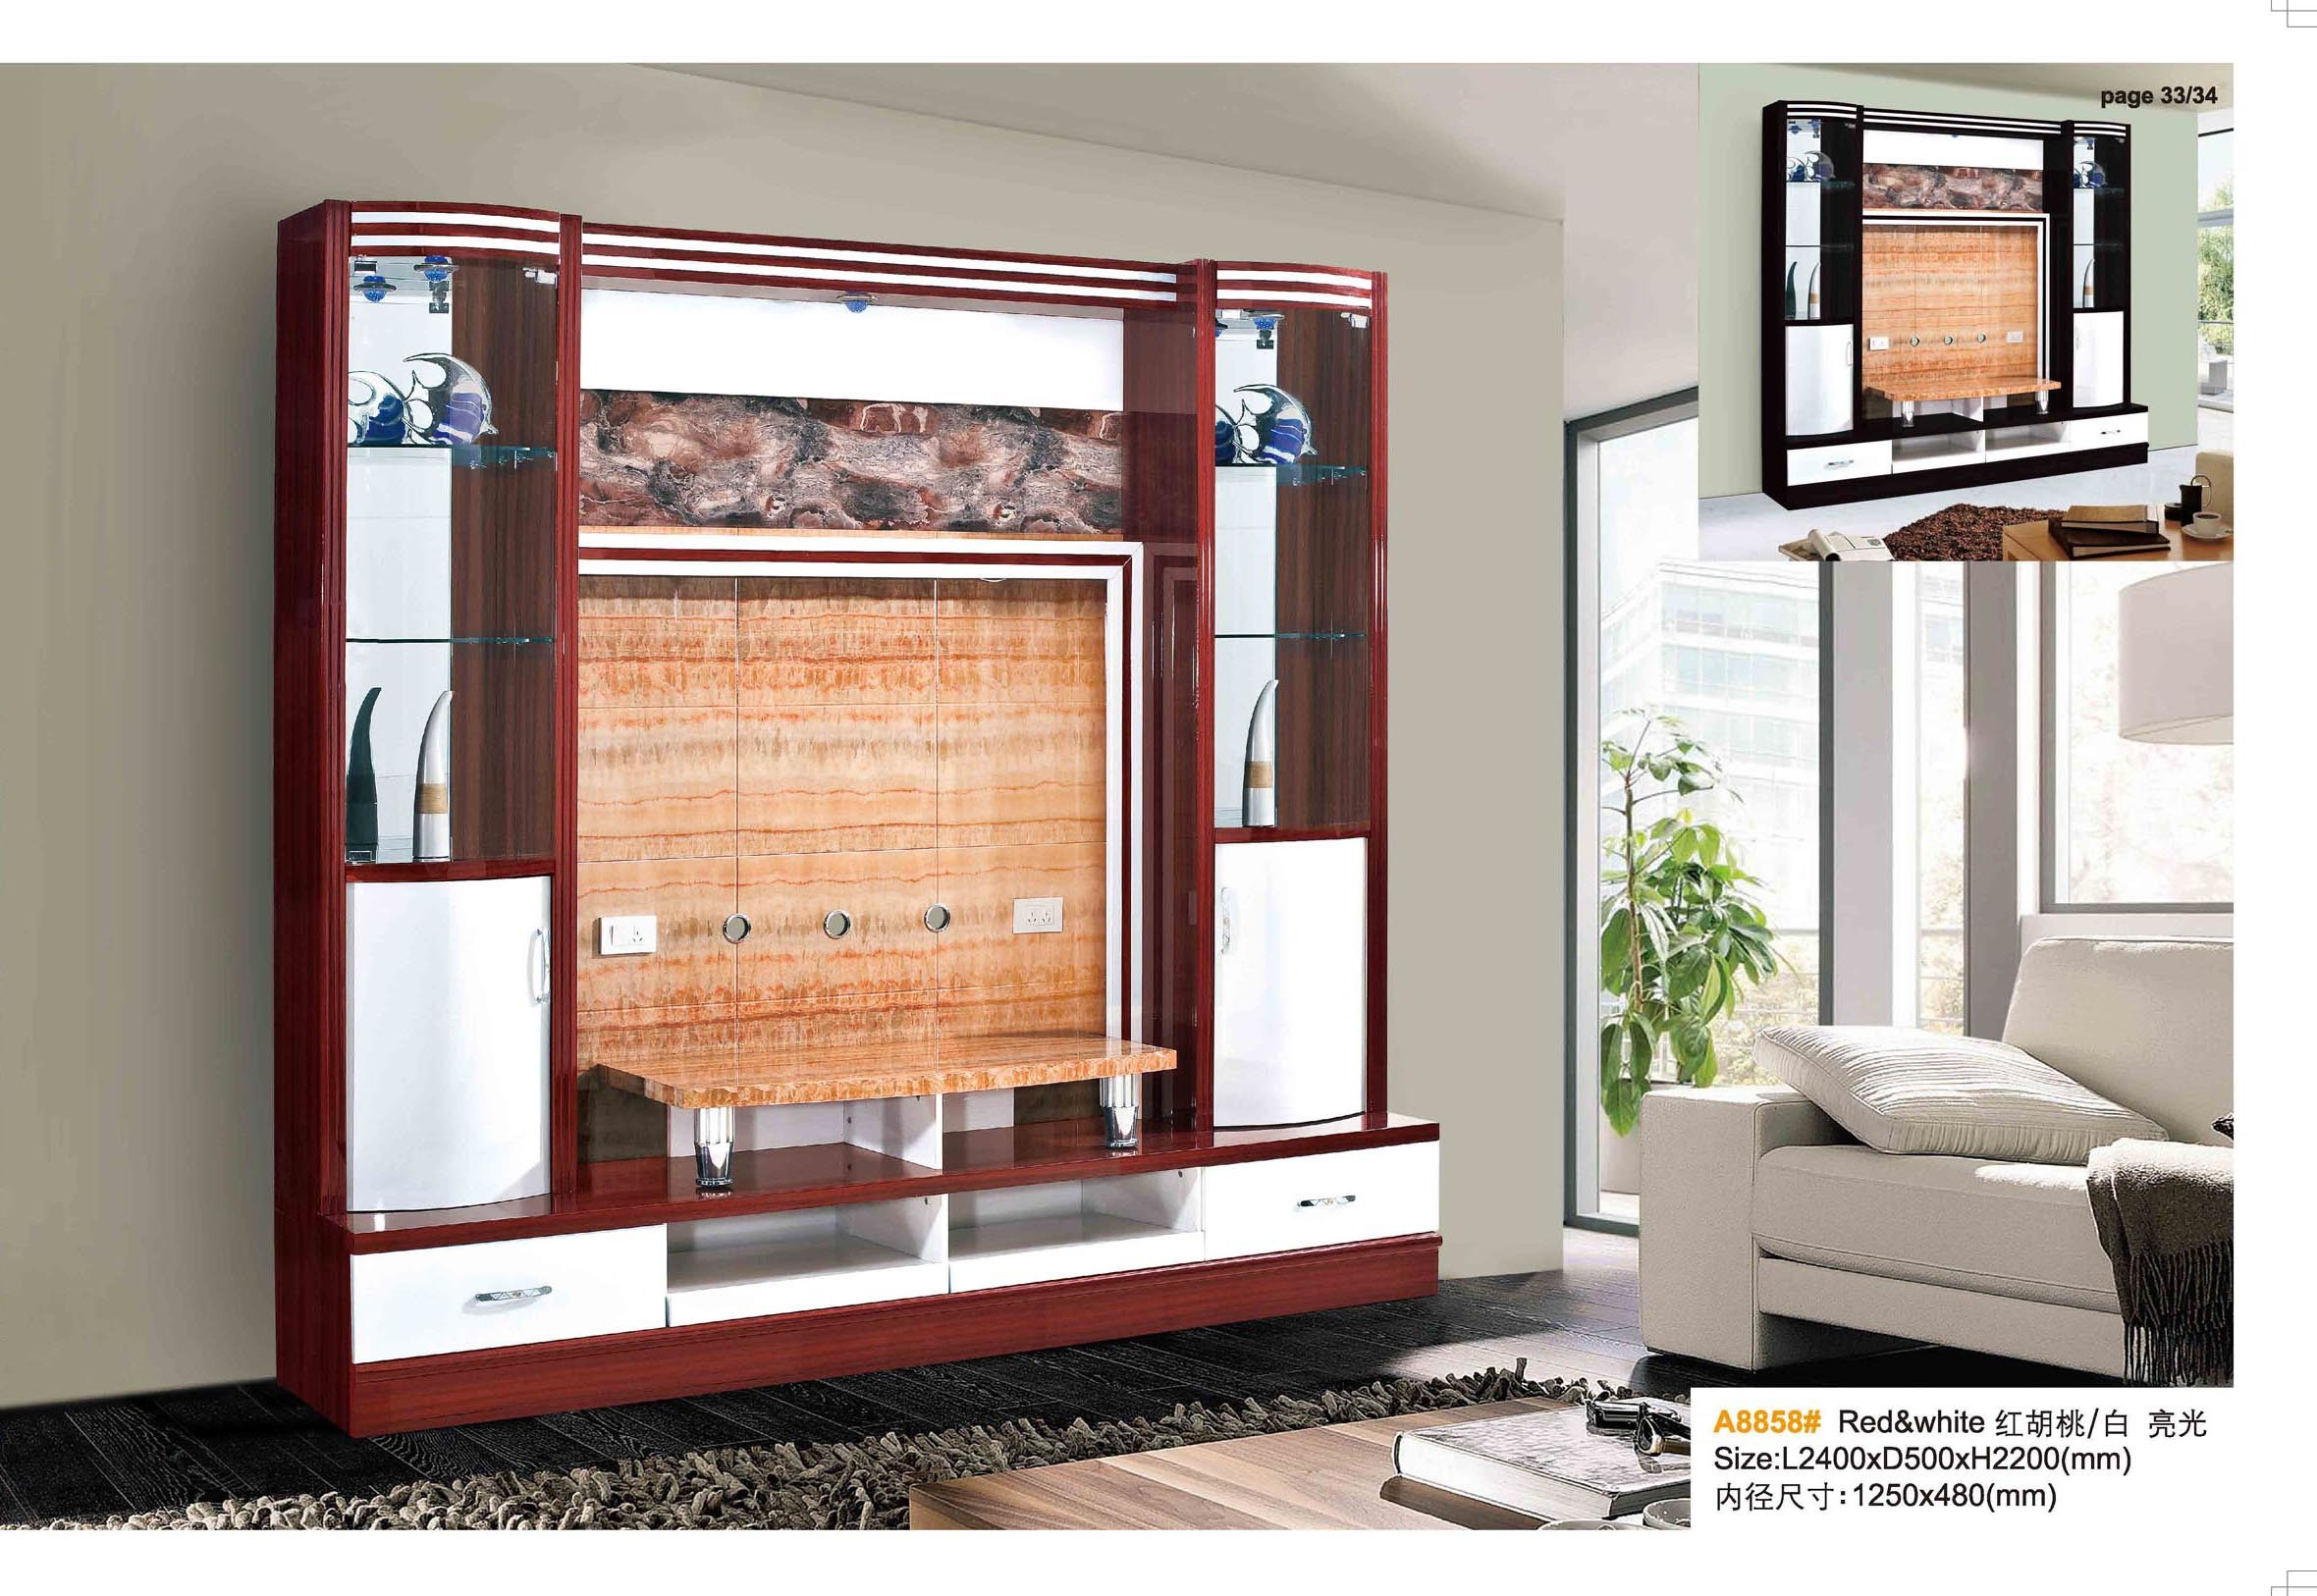 China Living Room Furniture Wooden Marble Wall TV Cabinet